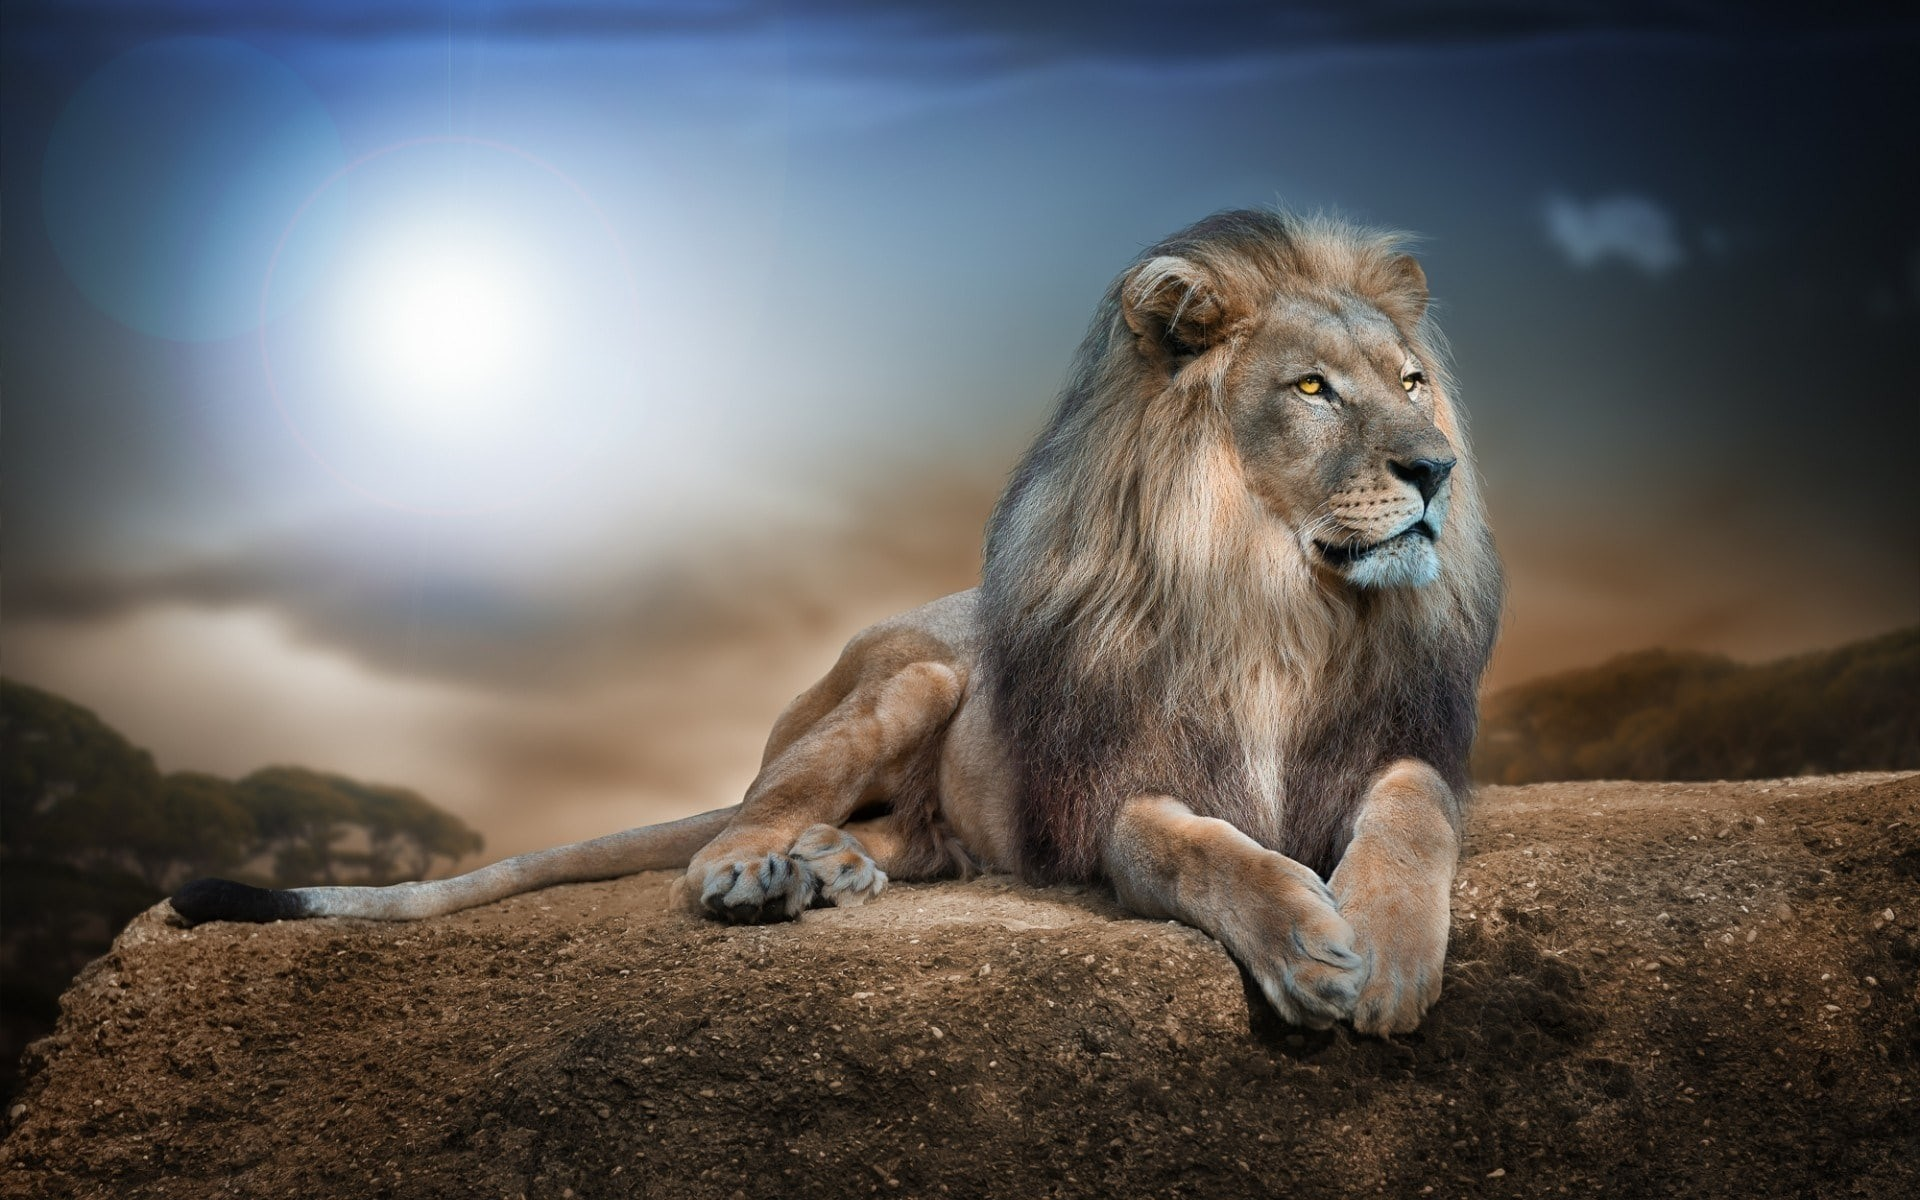 Lion Wallpaper Hd Download Free Amazing Hd Wallpapers For